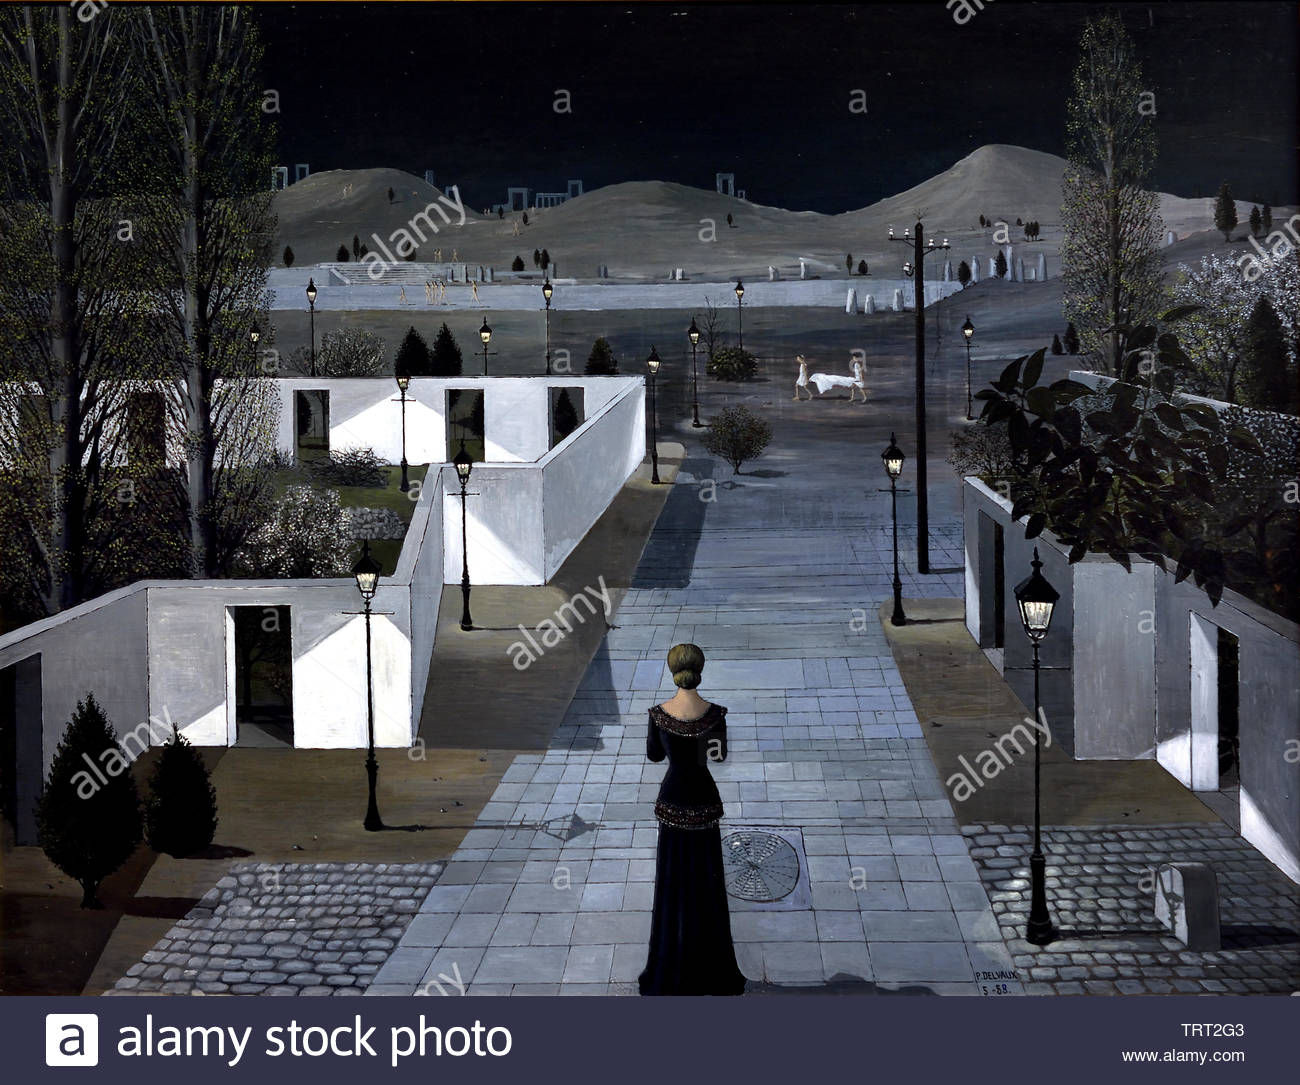 Landscape with Lanterns by Paul Delvaux born in 1897 Belgian Belgium, ( dream-like scenes of women, classical architecture, trains, skeletons, in combination, Surrealist movement.) - Stock Image